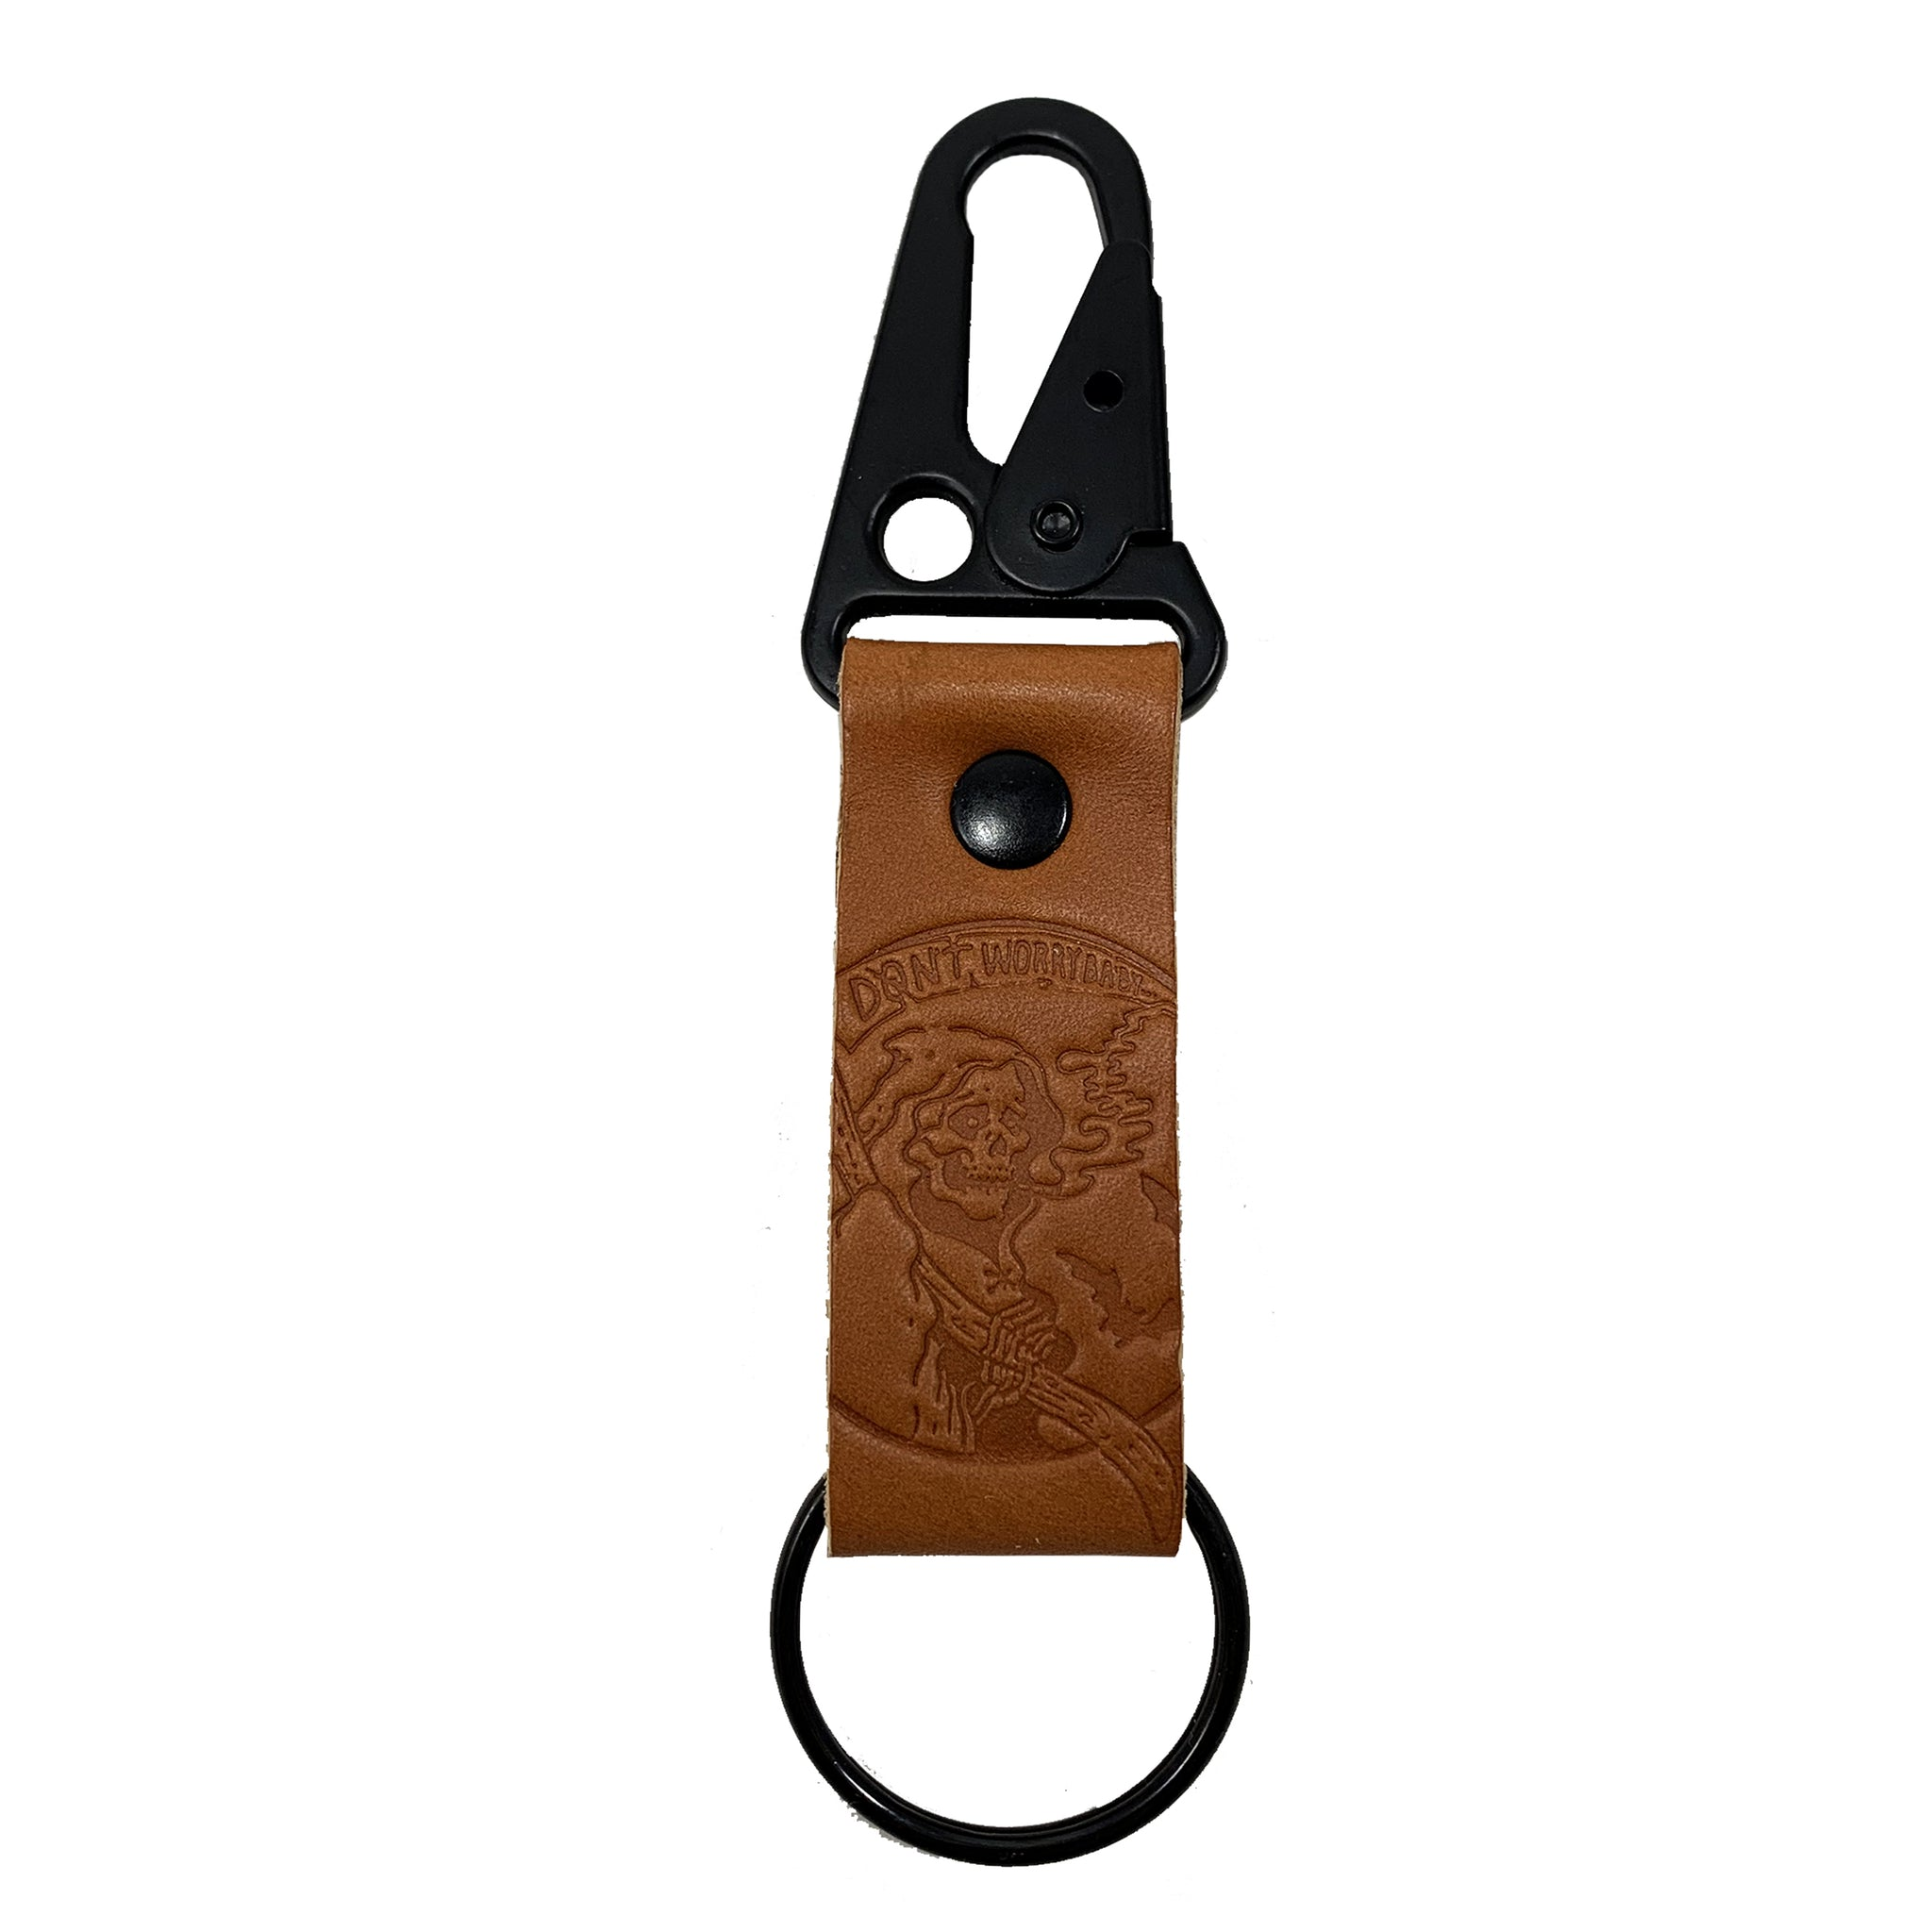 Don't Worry Baby Leather Keychain